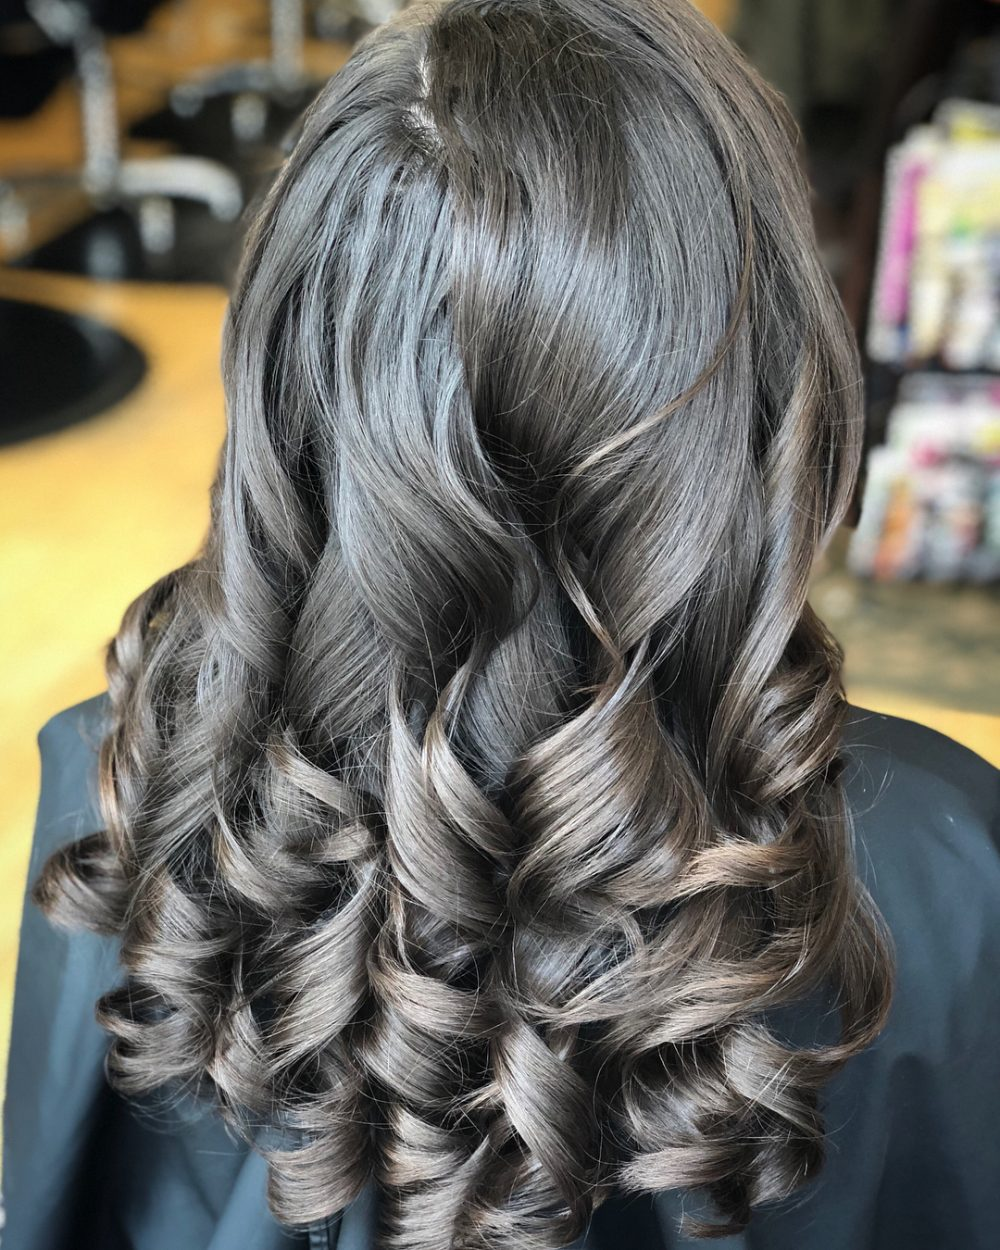 Vintage Glam Style hairstyle